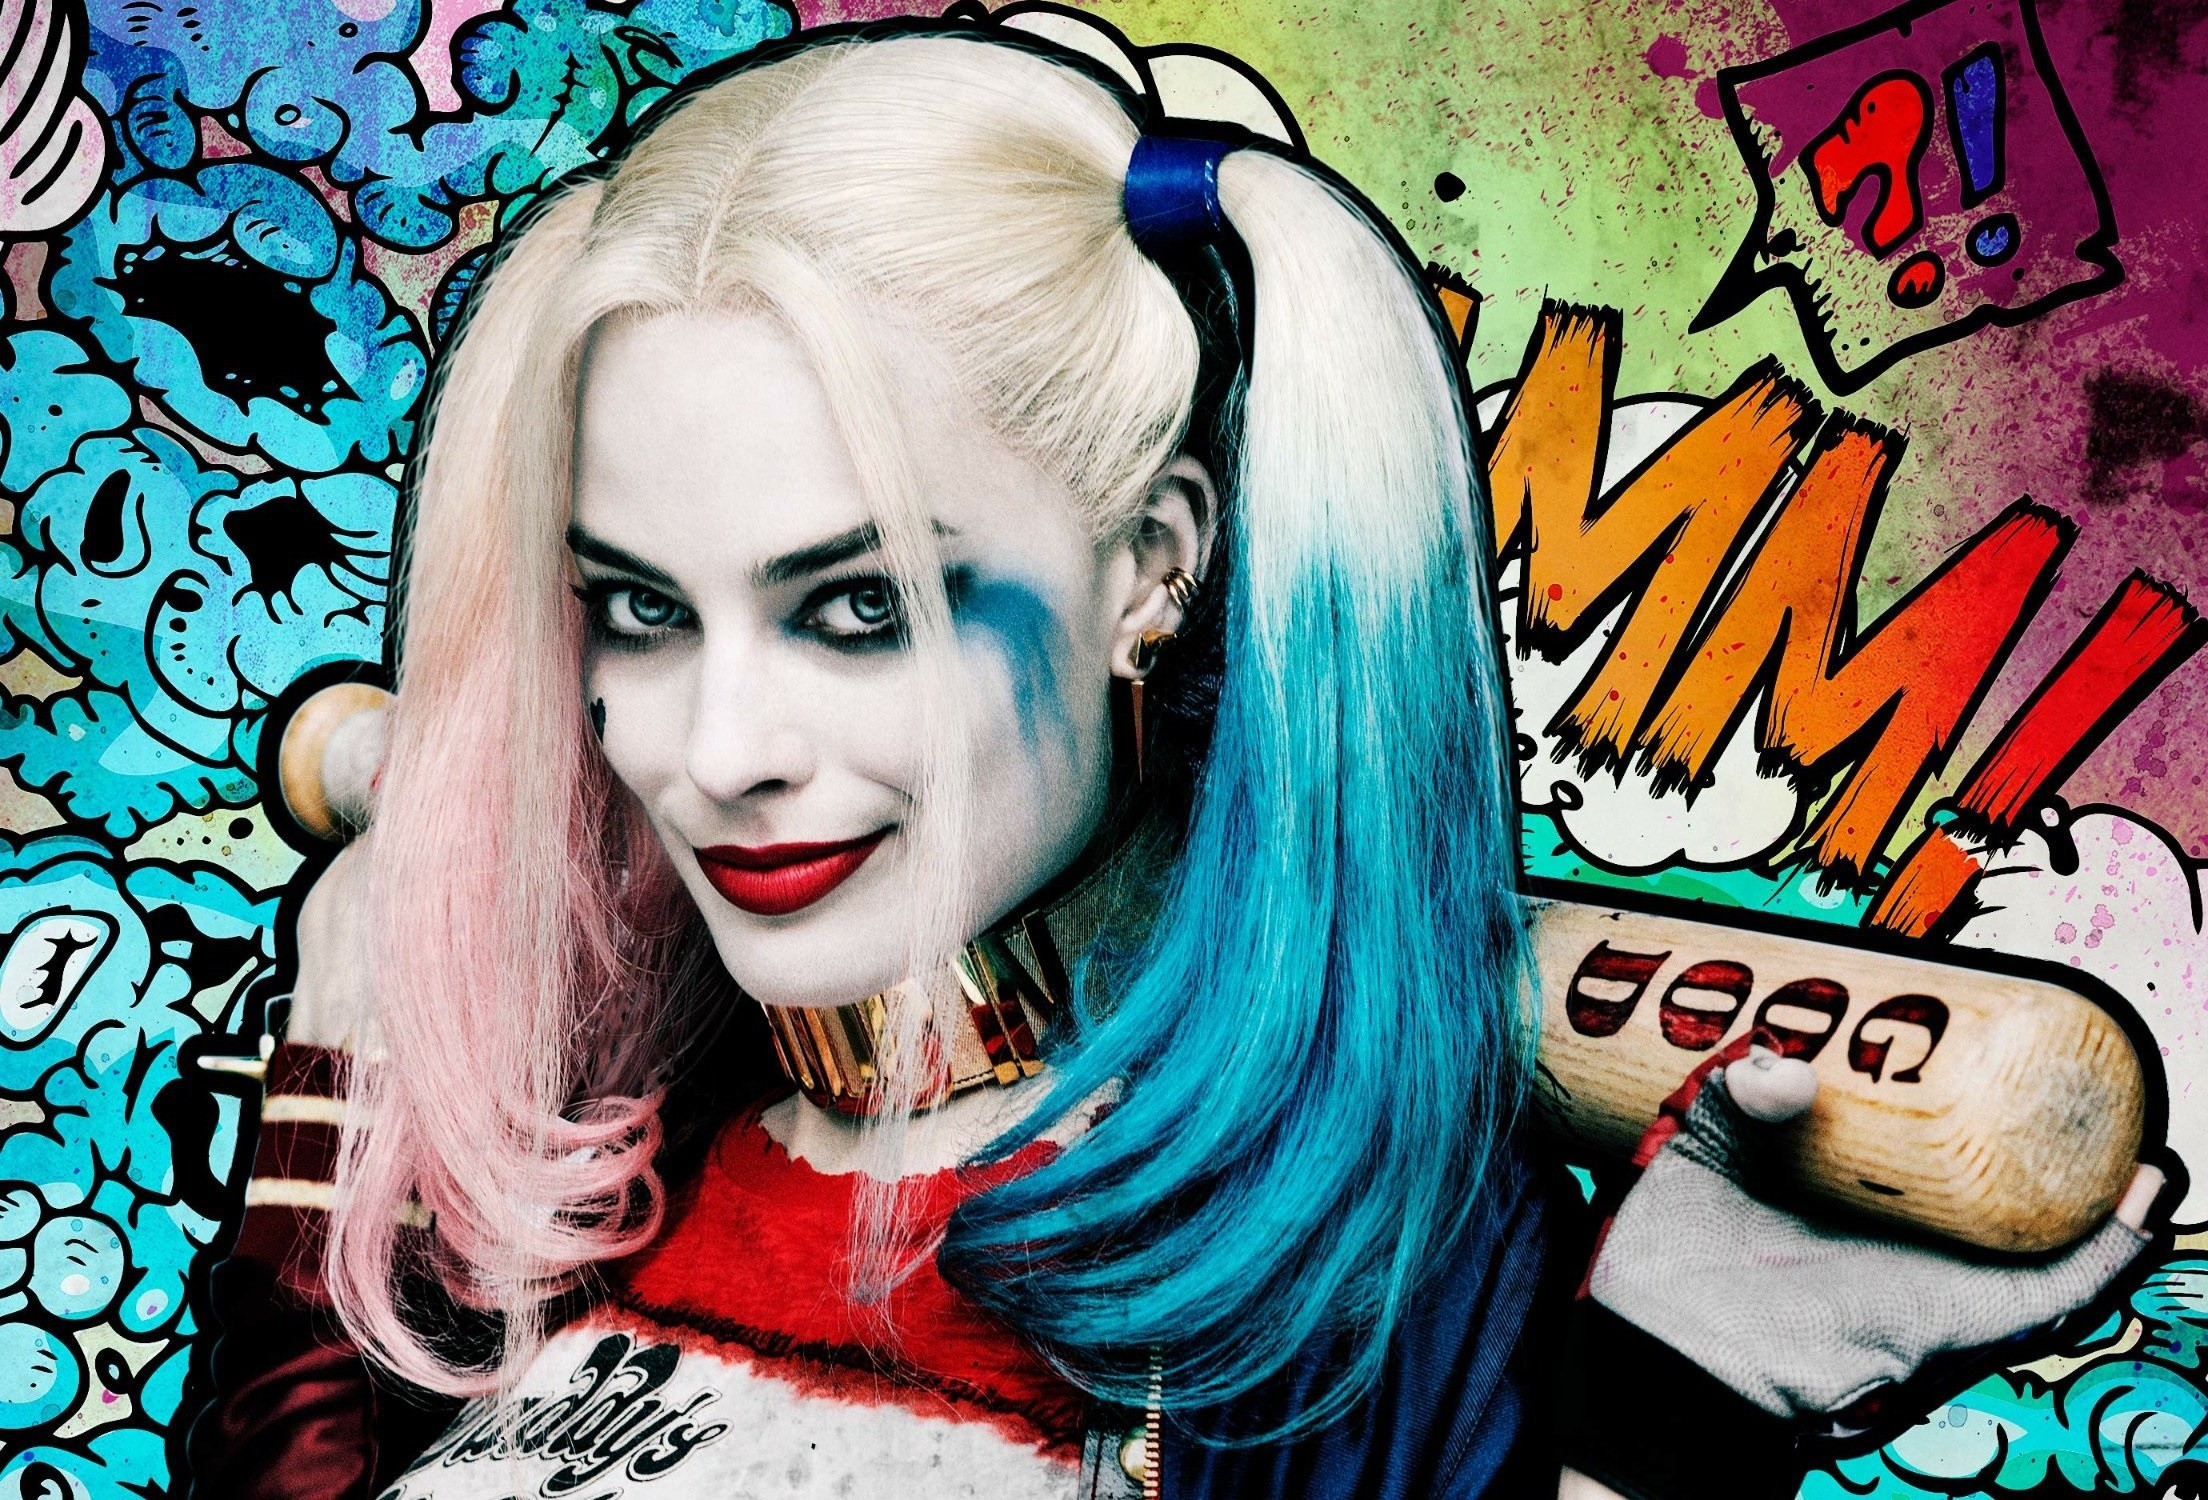 <b>Suicide Squad</b> Wallpapers HD Backgrounds, Images, Pics